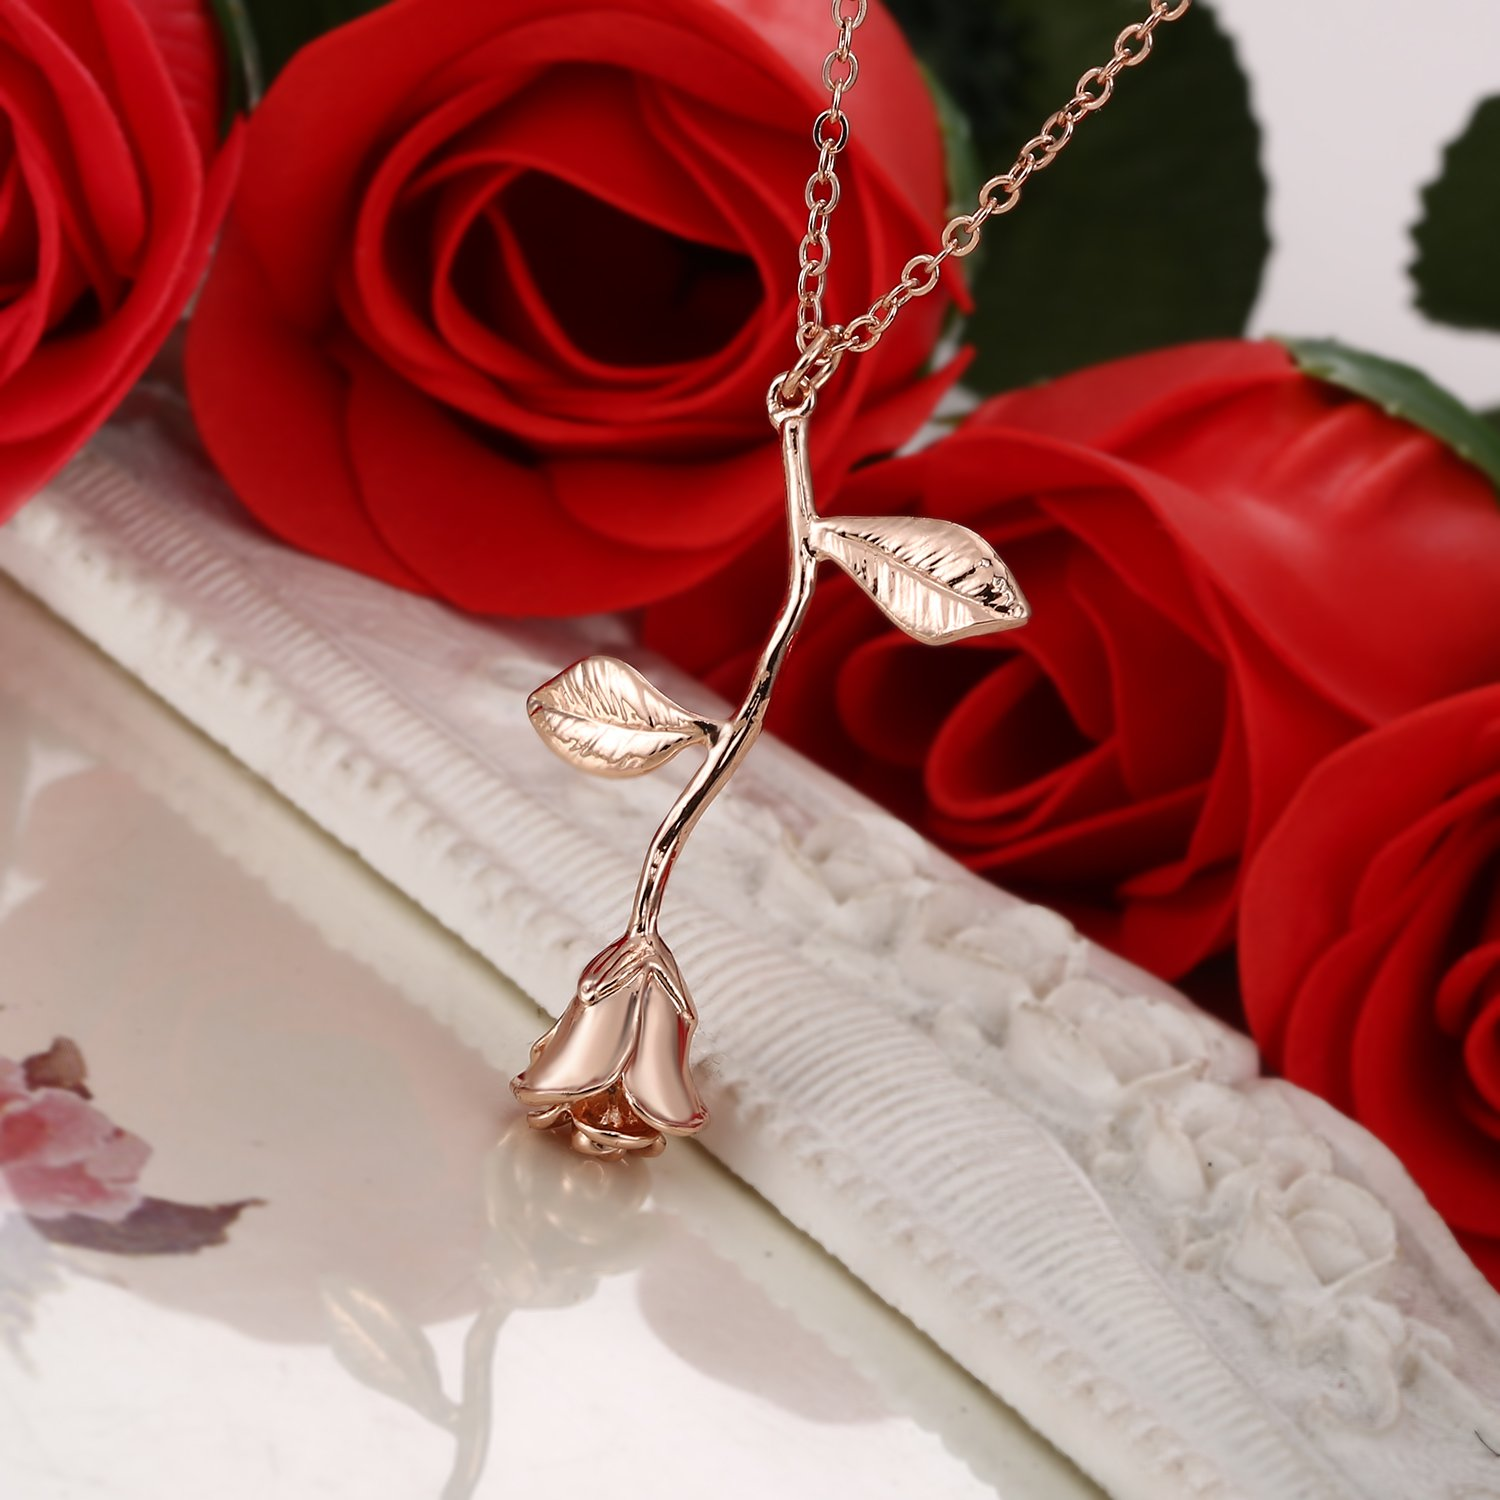 Vintage rose flower pendant necklace lovers birthday friendship details vintage rose flower pendant necklace lovers birthday izmirmasajfo